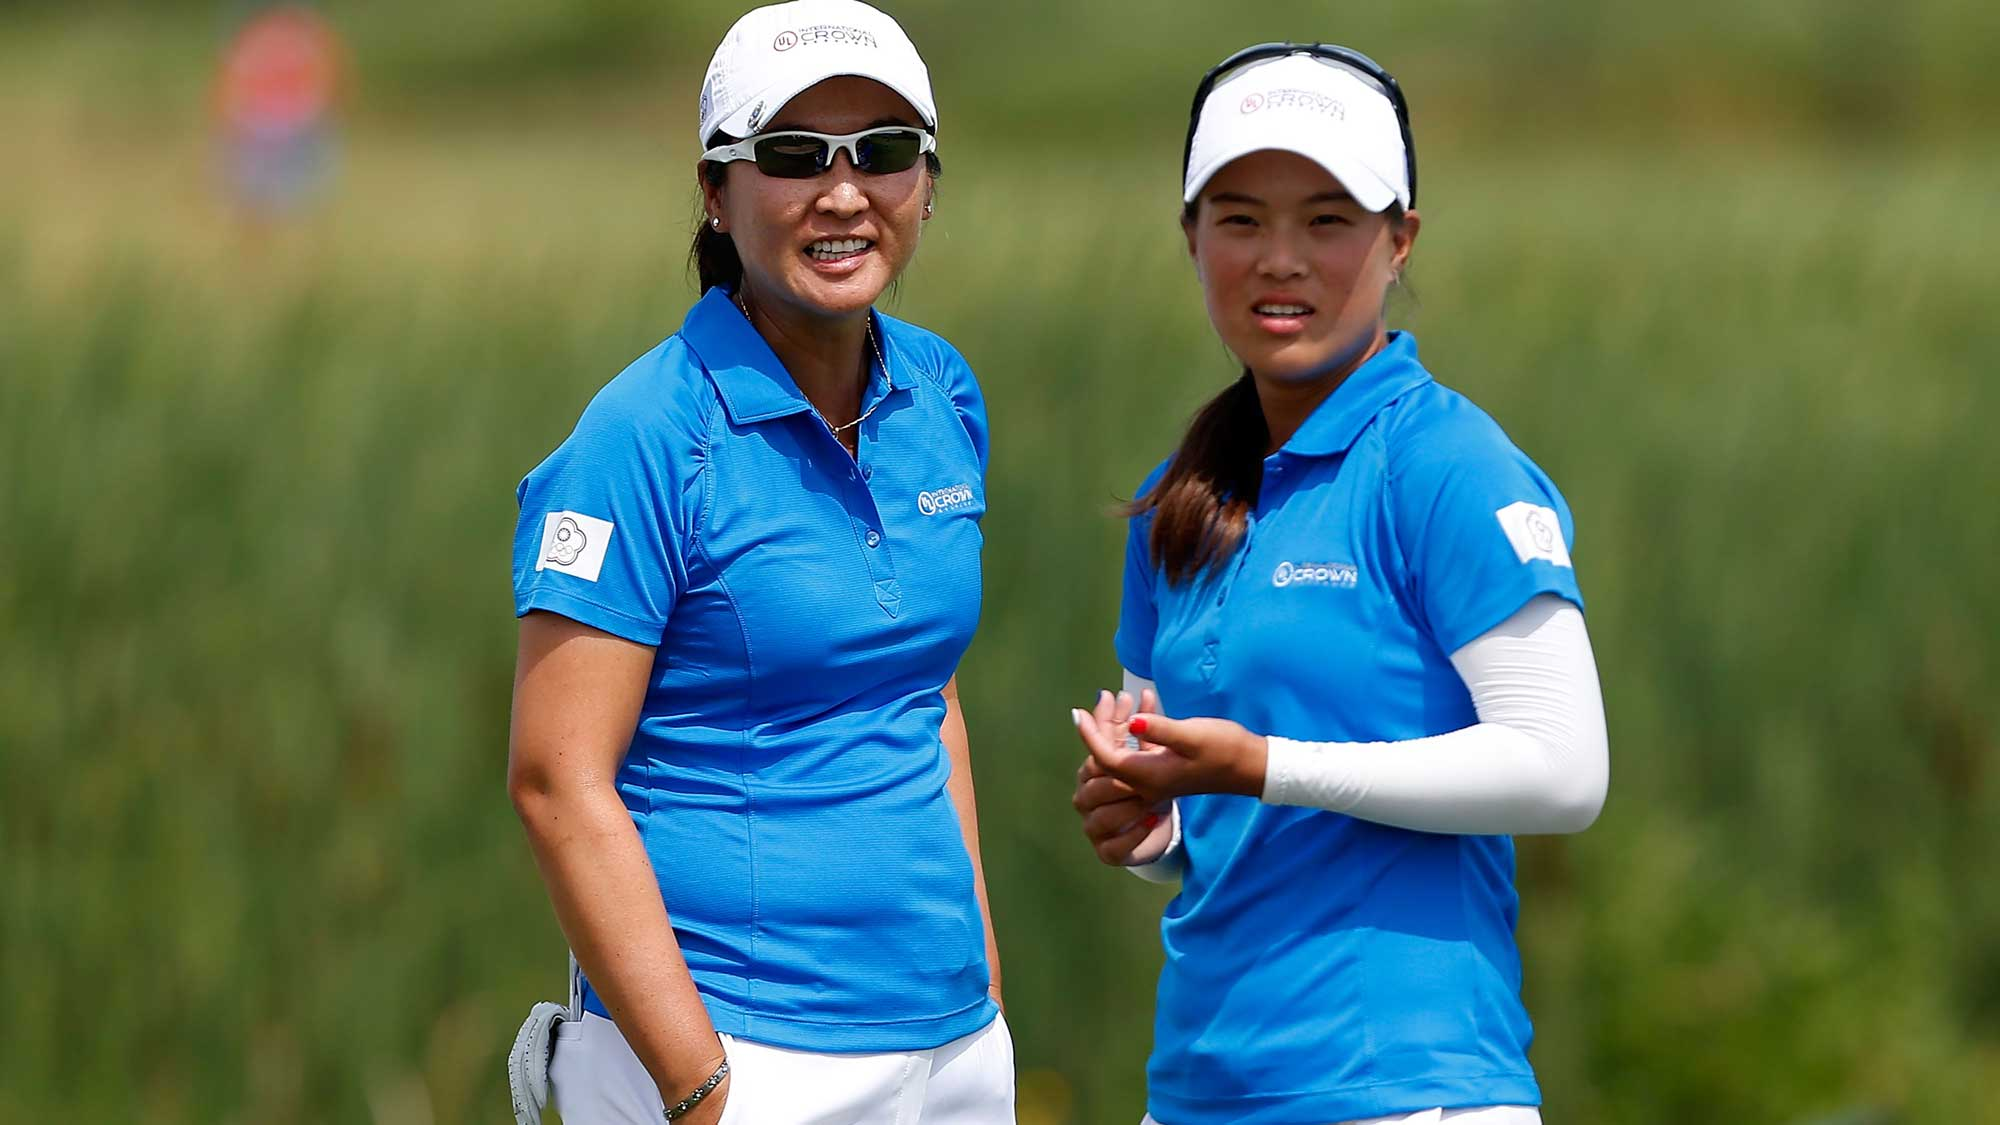 Candie Kung (L) and Ssu-Chia Cheng of Chinese Taipei stand on the fourth green during the four-ball session of the 2016 UL International Crown